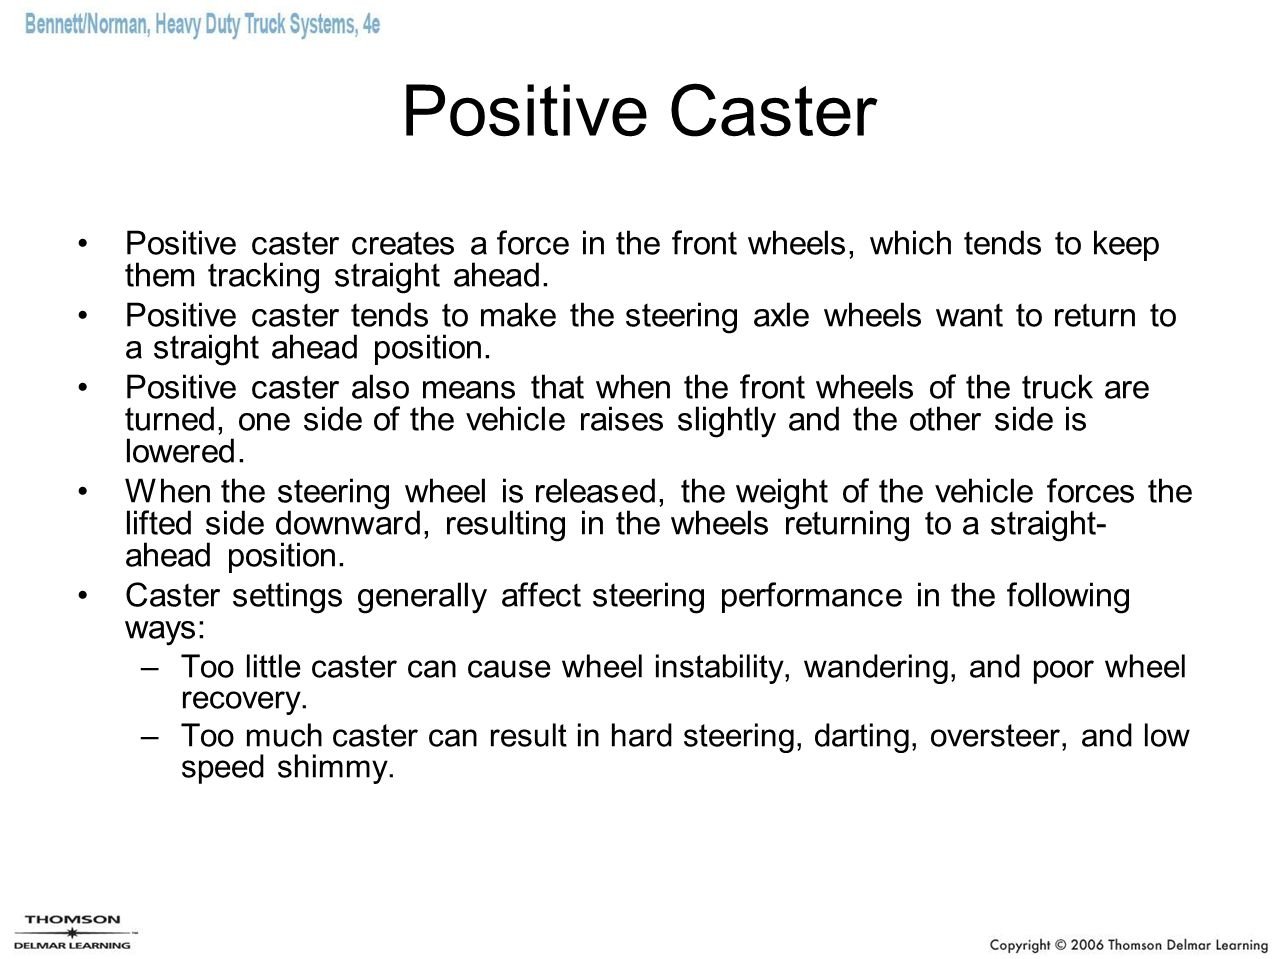 Positive Caster Positive caster creates a force in the front wheels, which tends to keep them tracking straight ahead.